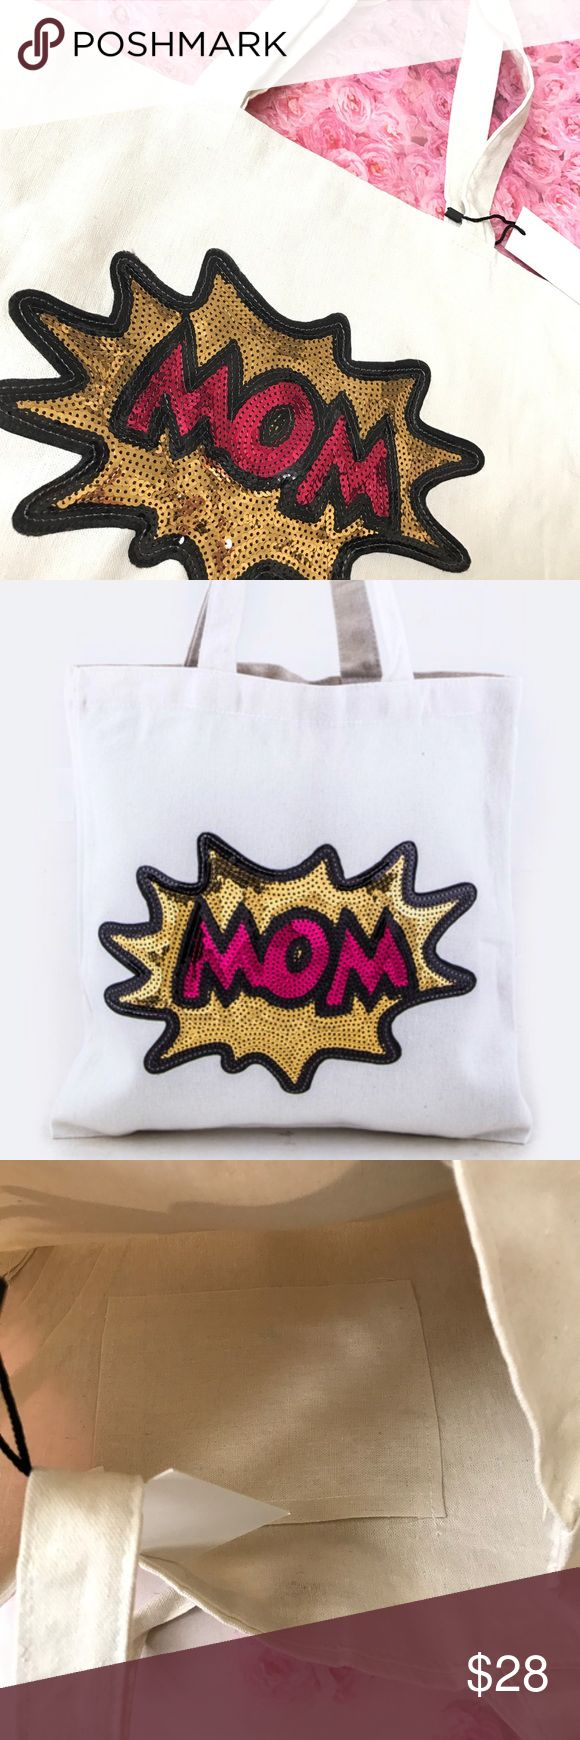 "Sequin Mom canvas tote bag Sequin MOM canvas tote bag  Super cute sequin details❤️  * Length - 13"" * Width - 1"" * Height - 13.5"" / 23.5"" With Handle * Canvas Material NWOT     🛍BUNDLE & SAVE 15%🛍 ✨TOP RATED SELLER✨ 📦SAME DAY OR NEXT DAY SHIPPING!📦 ❤REASONABLE OFFERS WELCOME❤ ❌NO TRADES OR PAYPAL❌ Bags Totes"